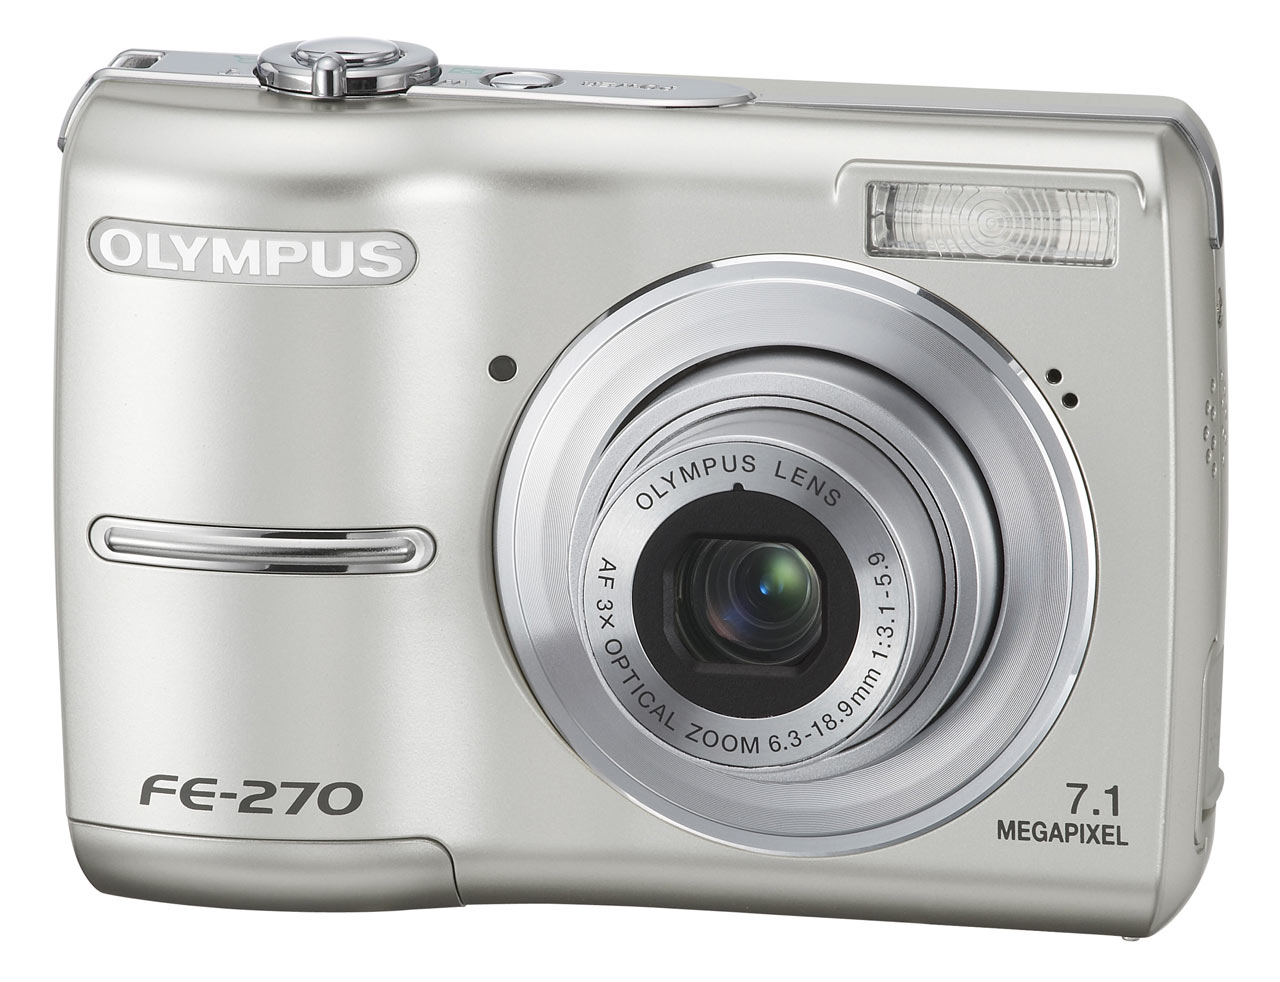 Olympus fe-170 02/10/2002 (free) download latest version in.